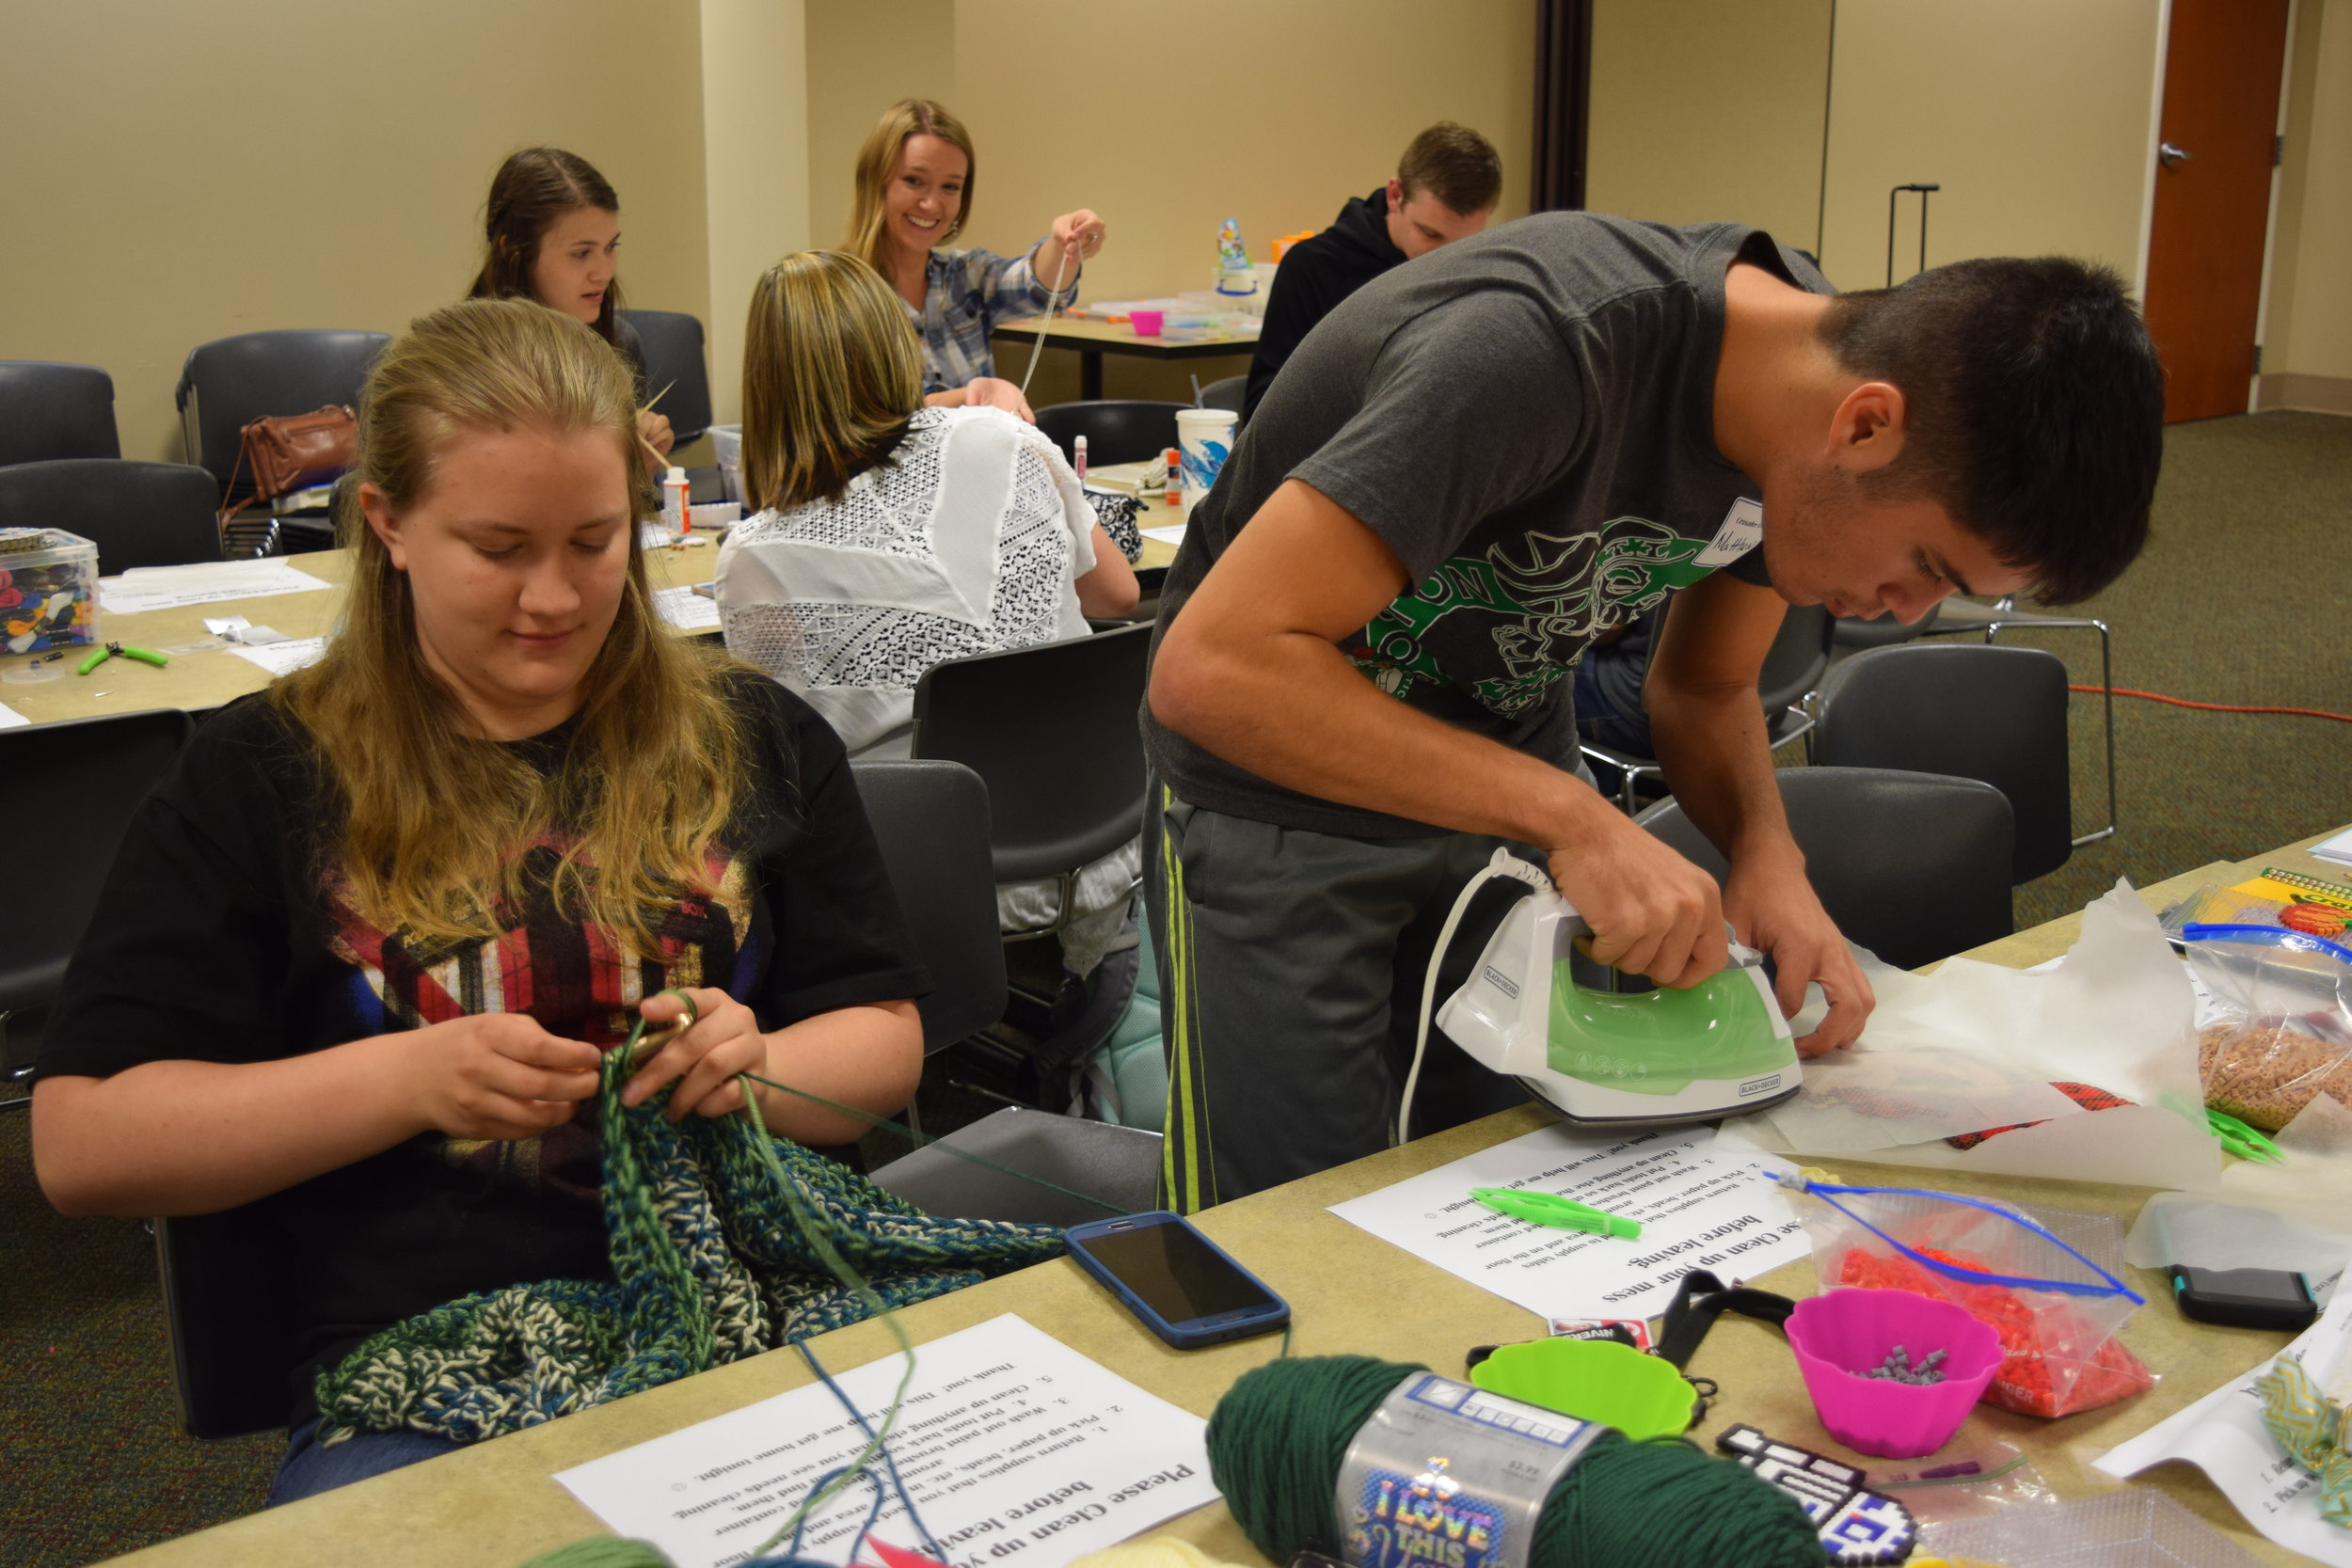 Jocelynn Johnson and Matthew Dunlap diligently work on their projects at the Crusader Craft Club.